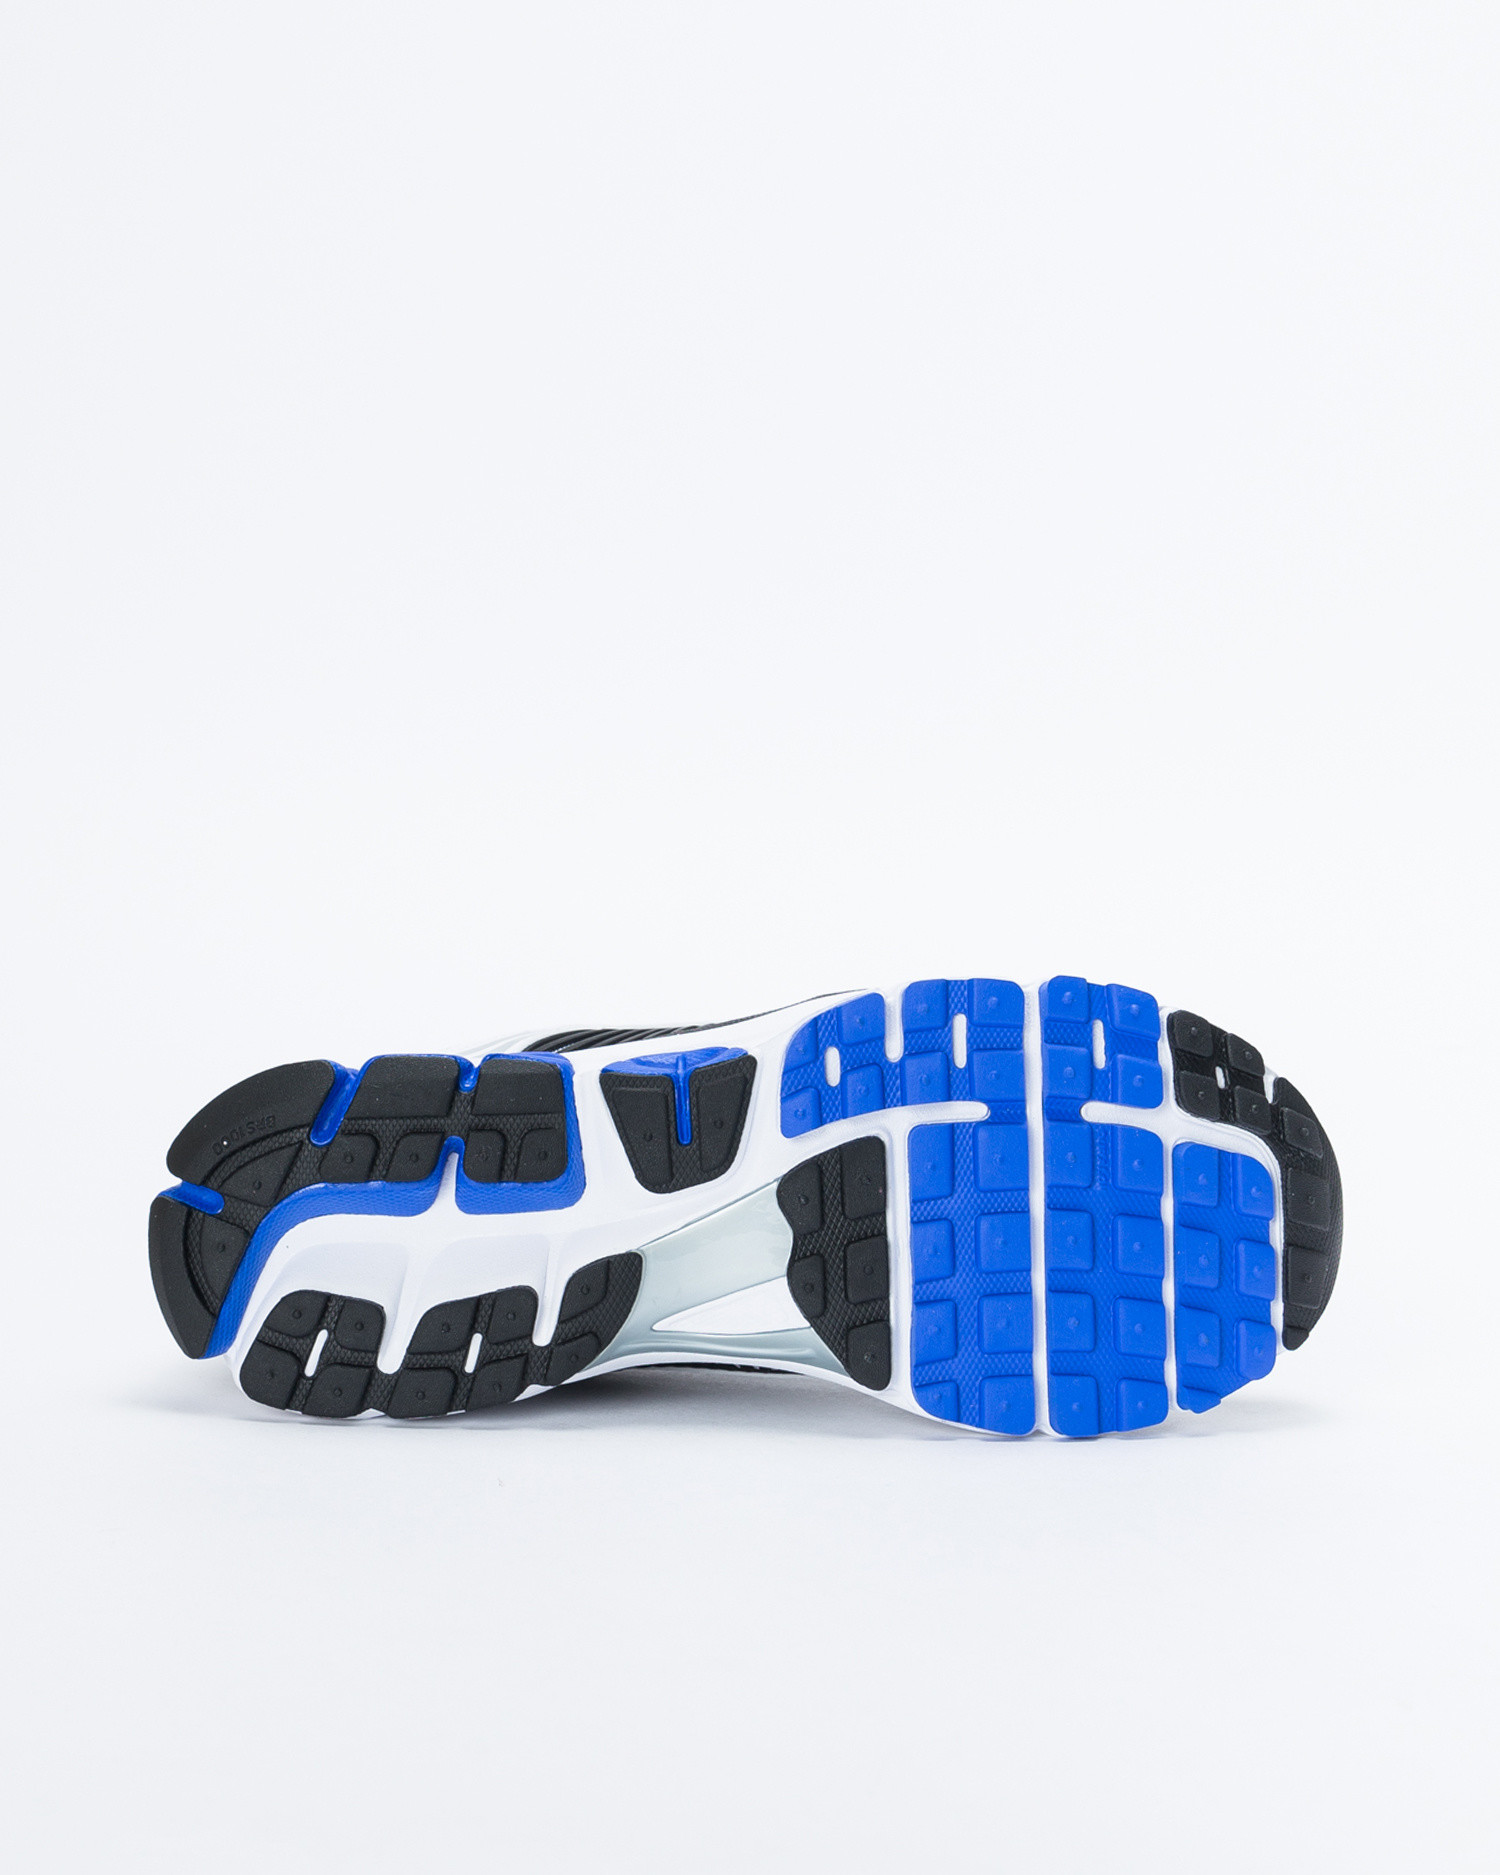 Nike Zoom Vomero 5 Se SP White/Racer Blue-Black-Sail